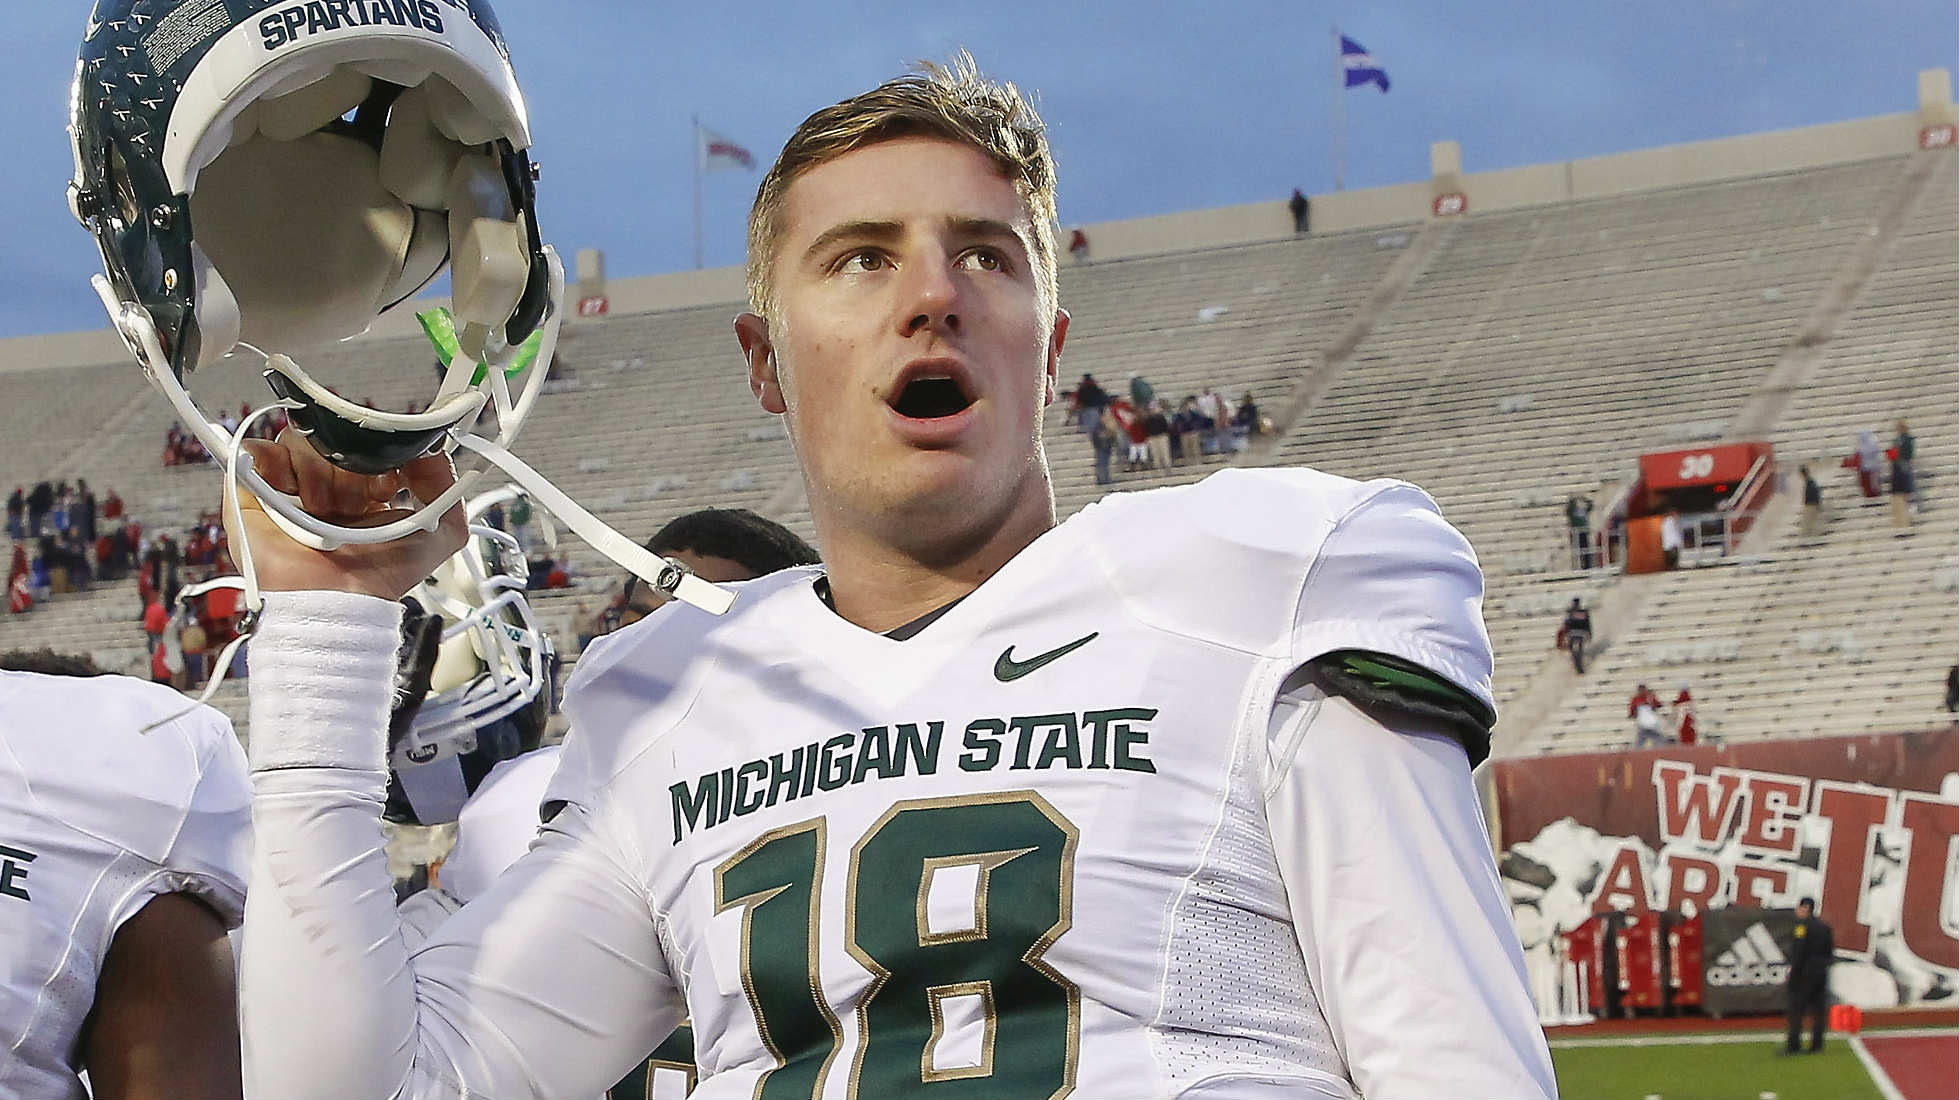 Michigan State QB Connor Cook not named a captain  NCAA